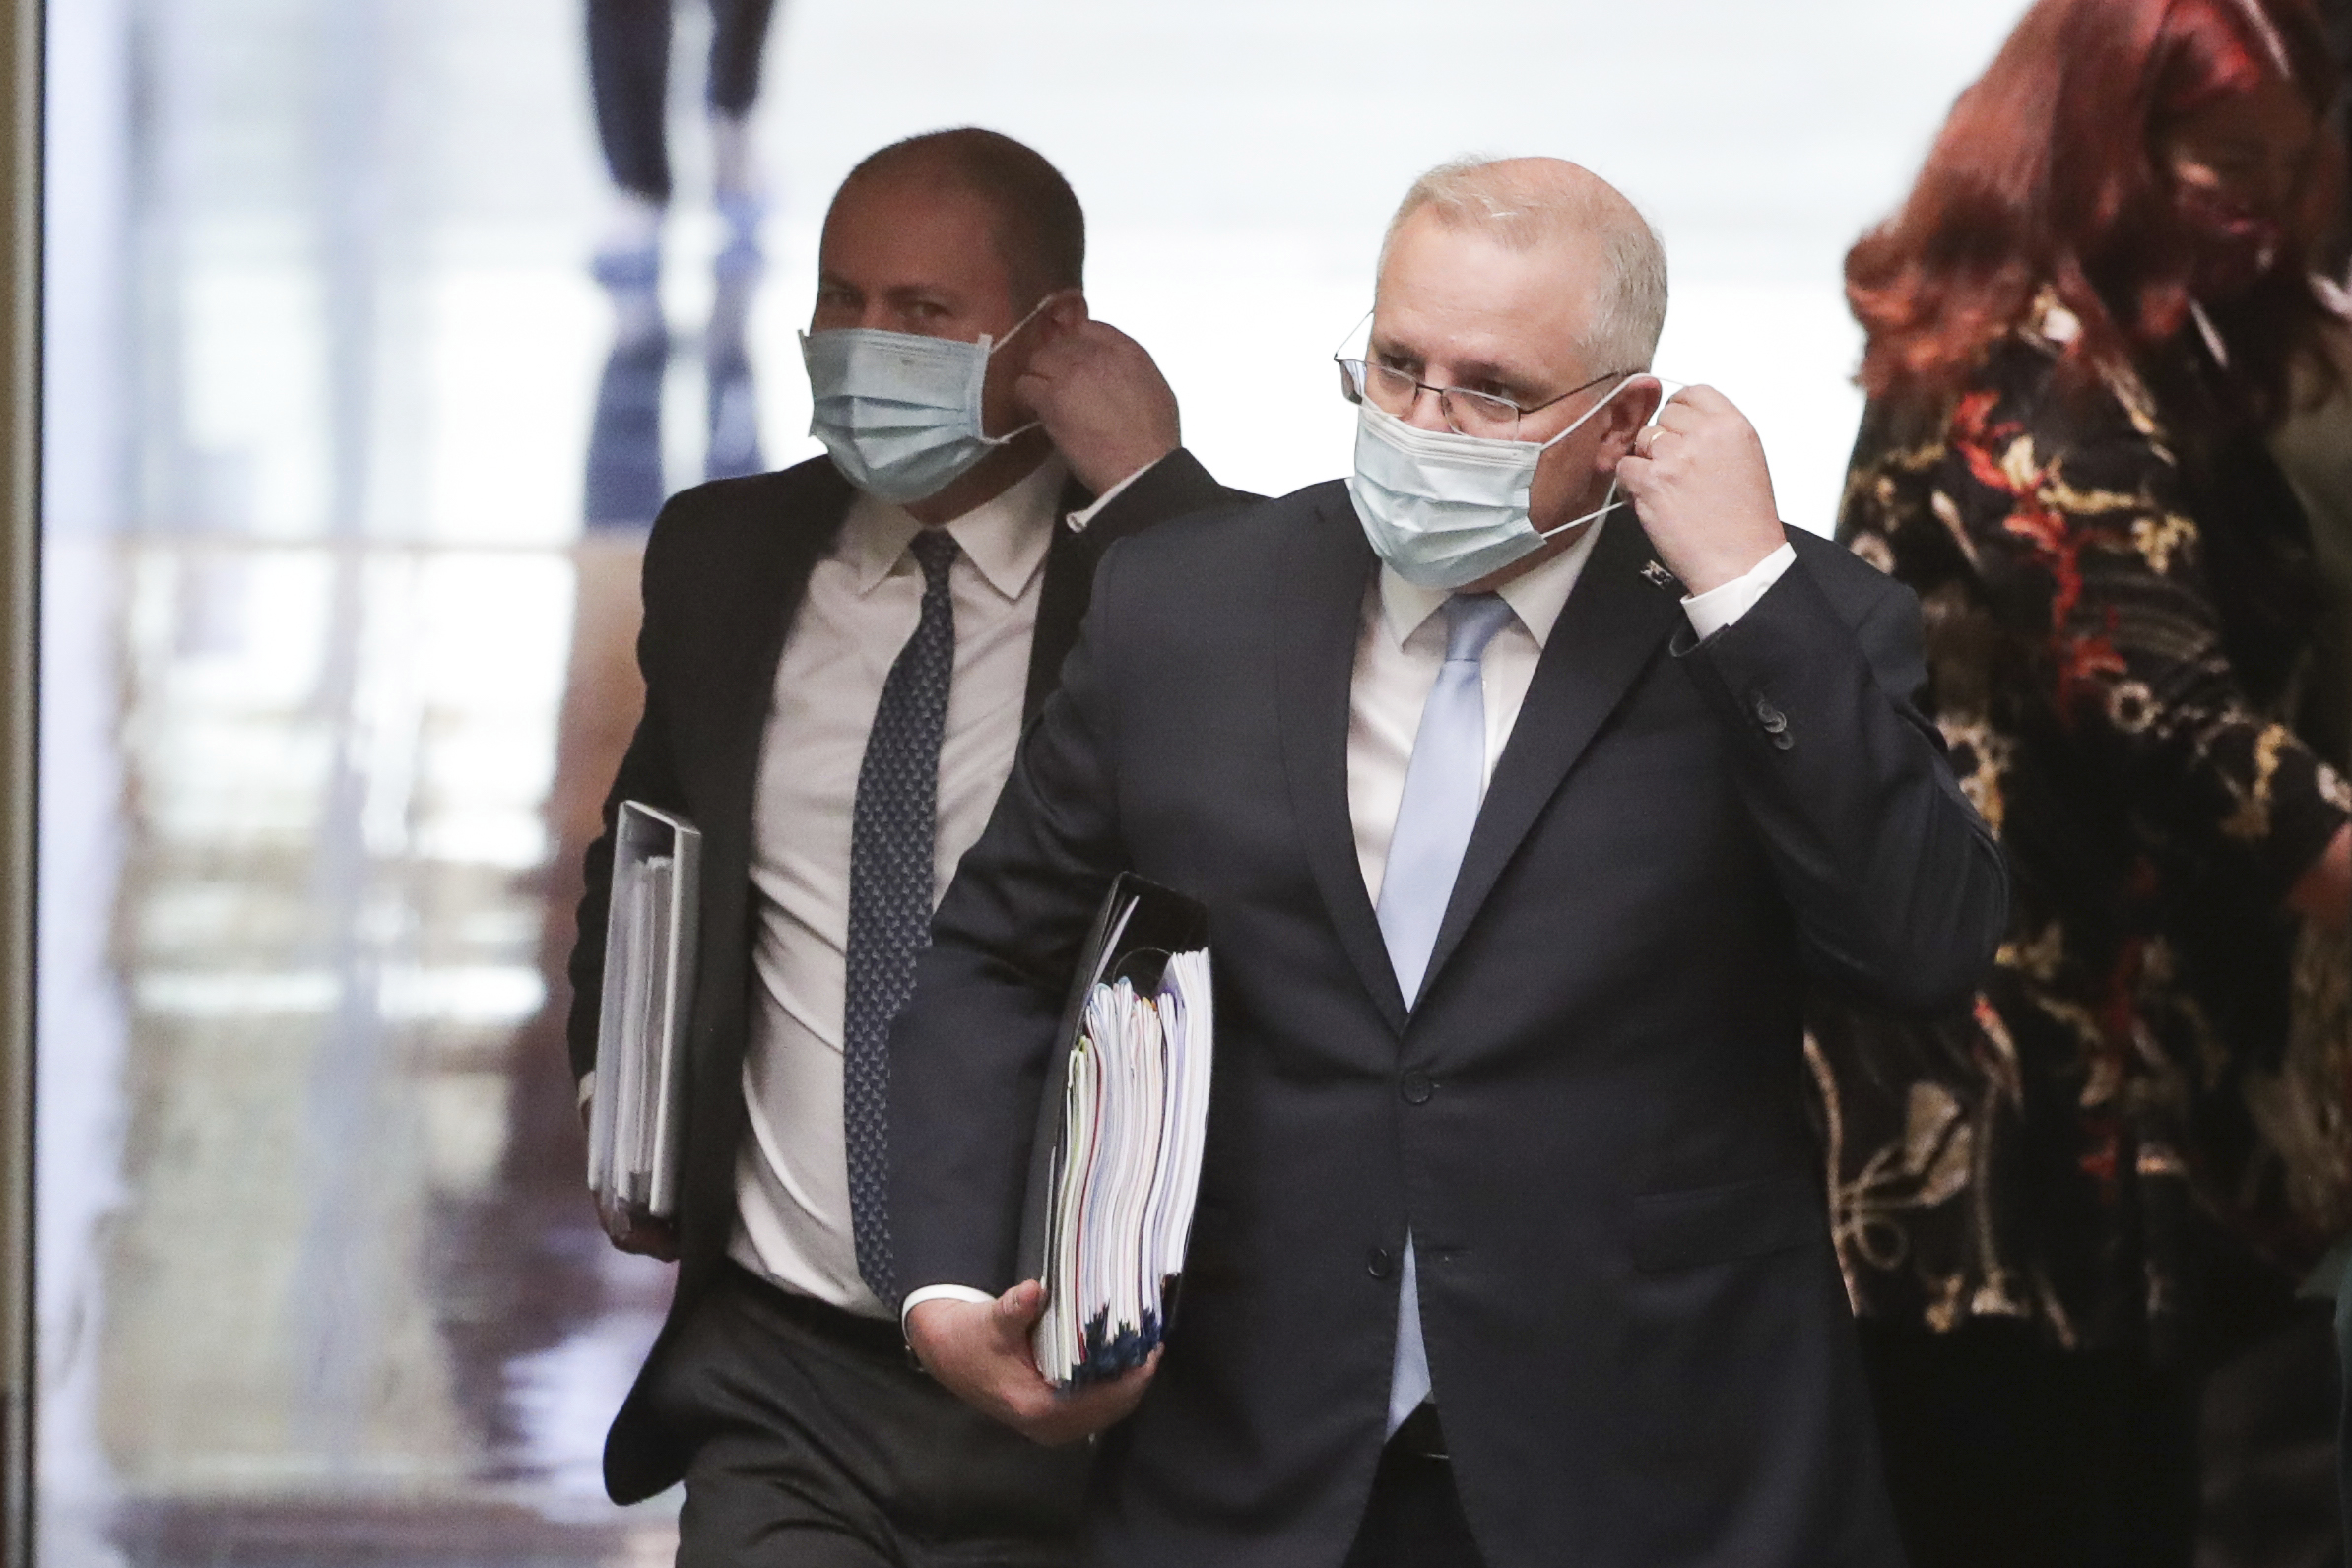 Masked MPs return to parliament as aged care furore rages